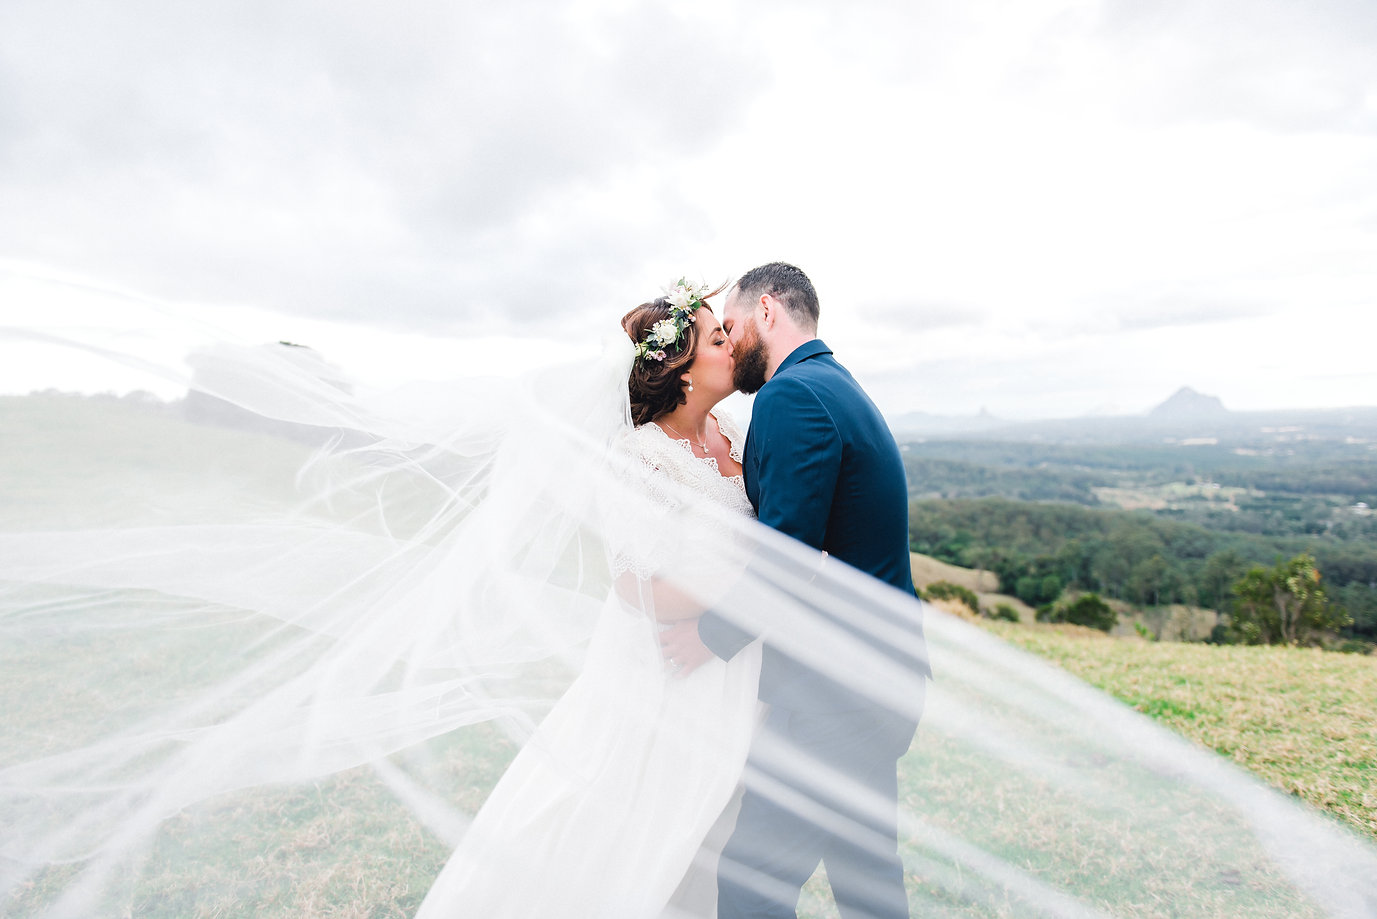 Affordable Wedding Photography.Joy Philippe Photography Brisbane Wedding Photographer